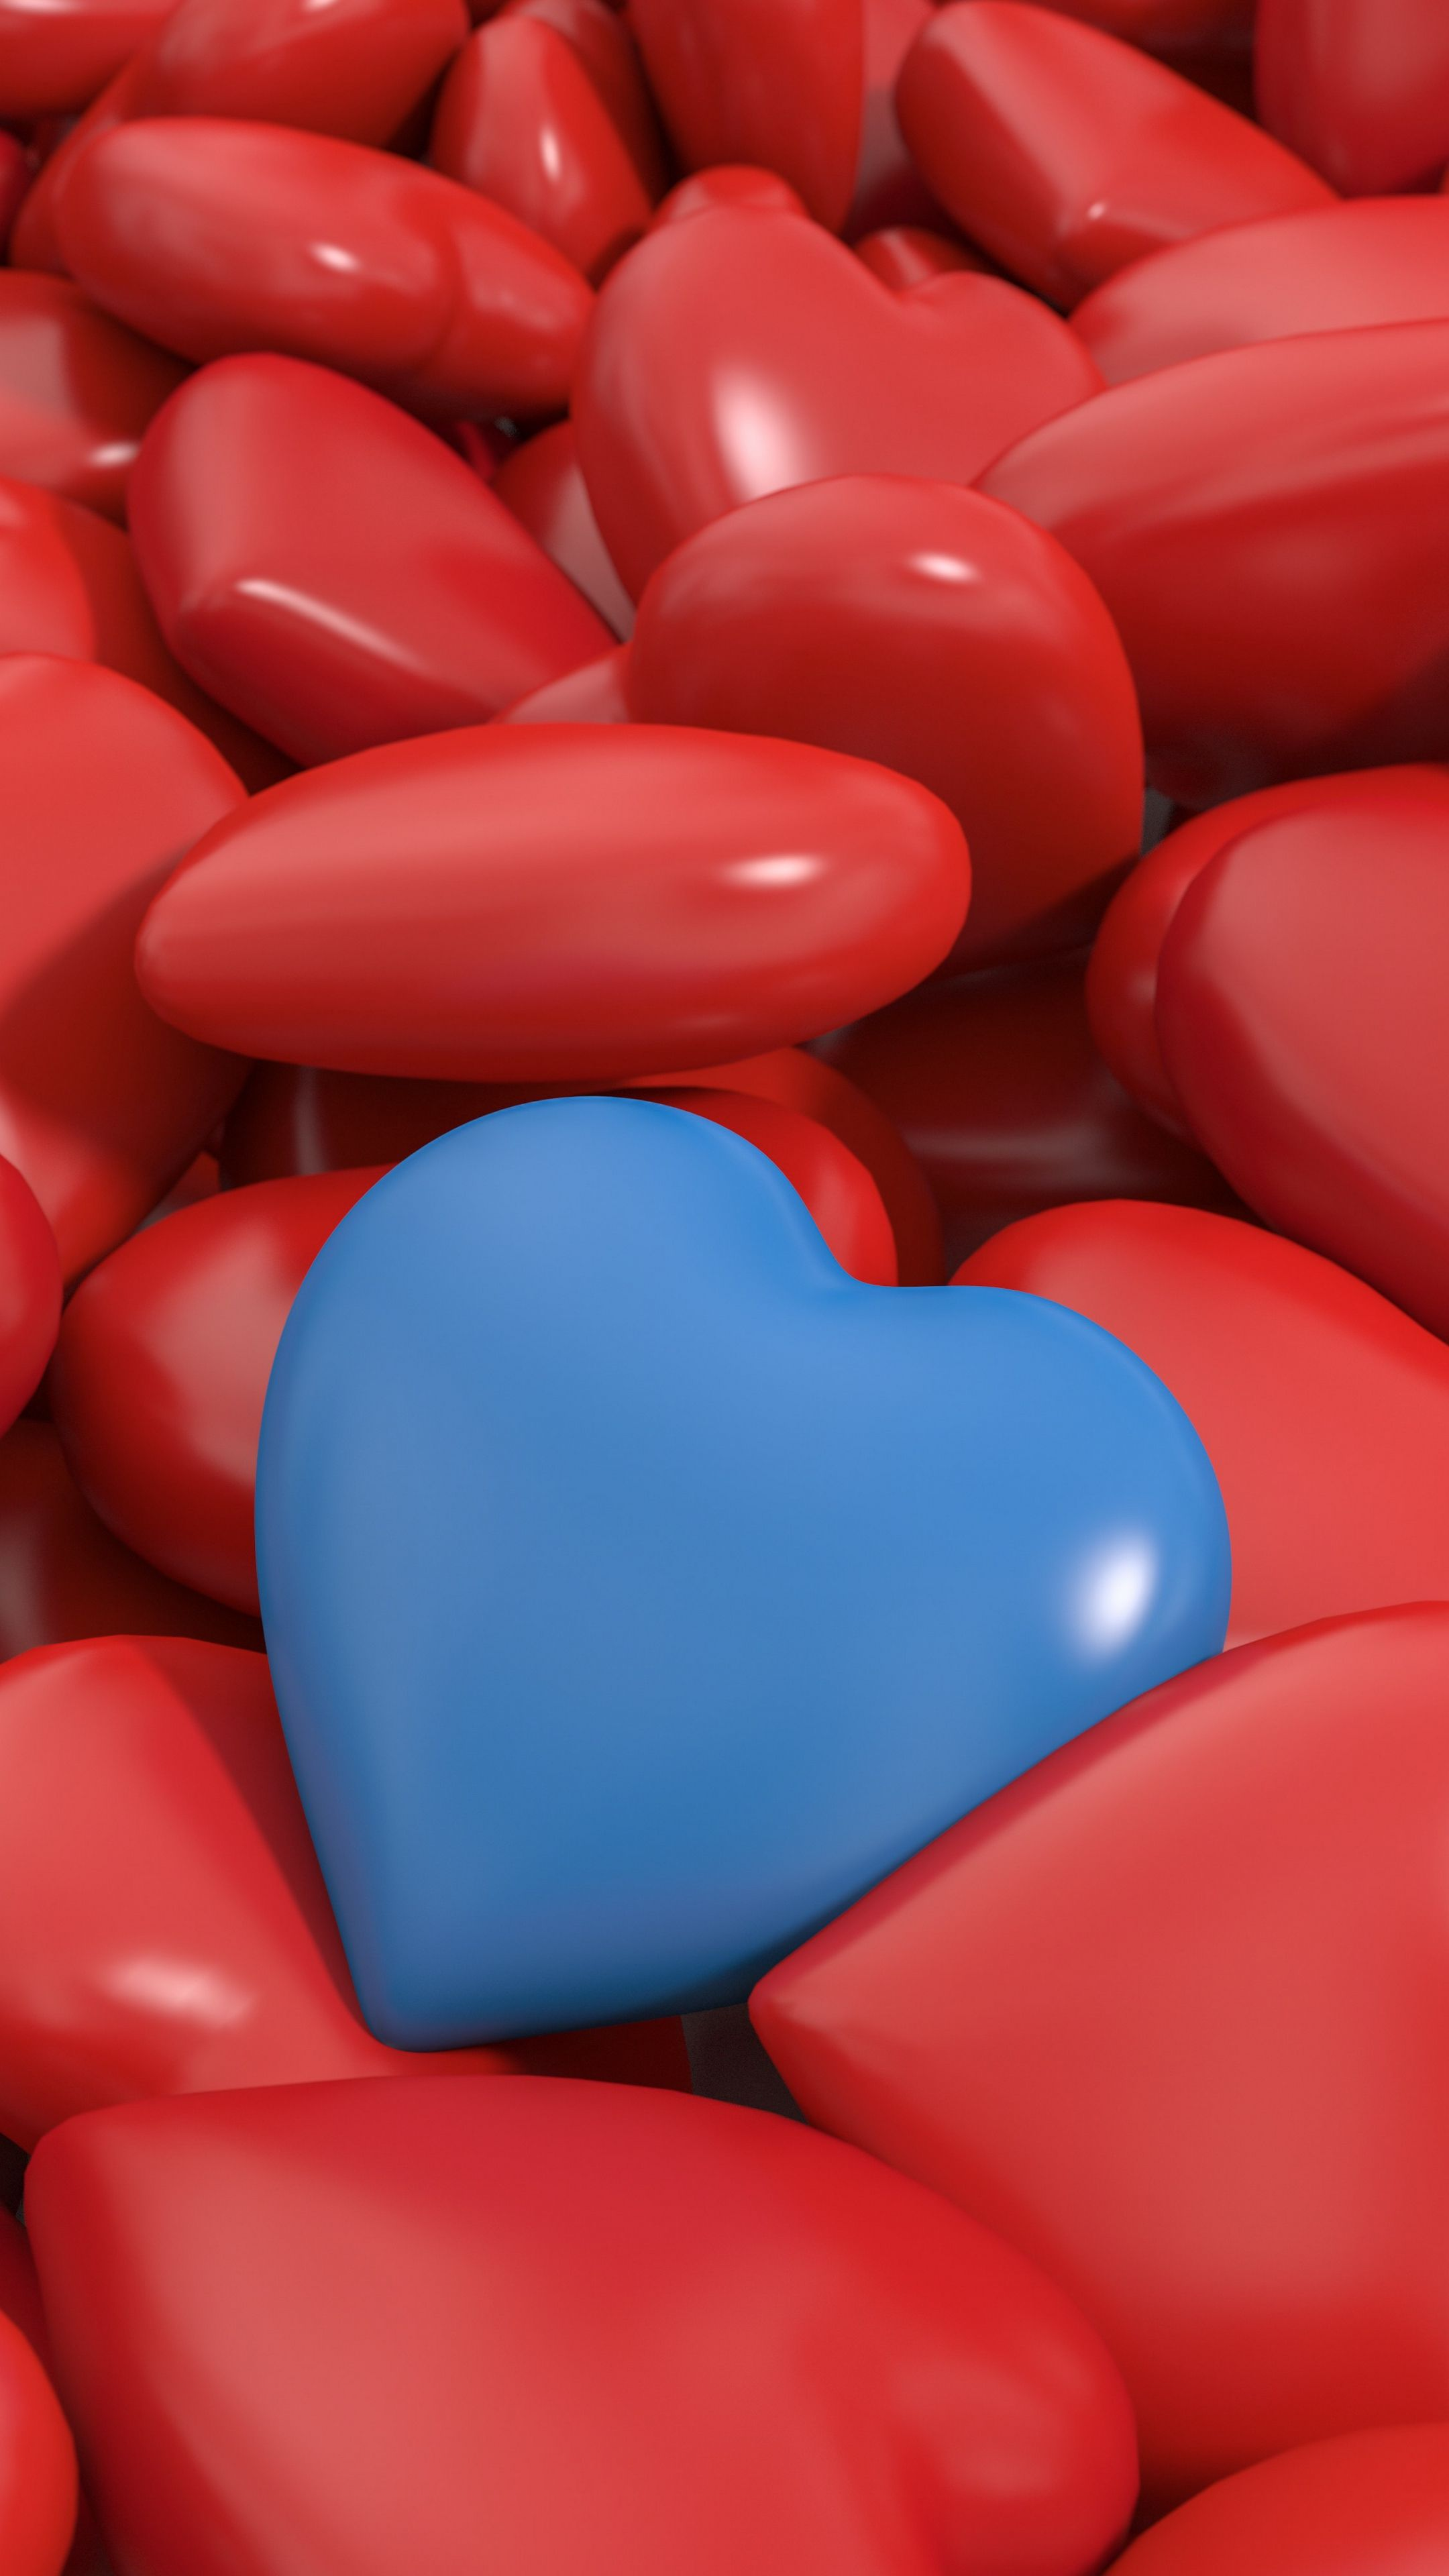 Emotions Heart Red Blue 3d Wallpapers Hd 4k Background Blue